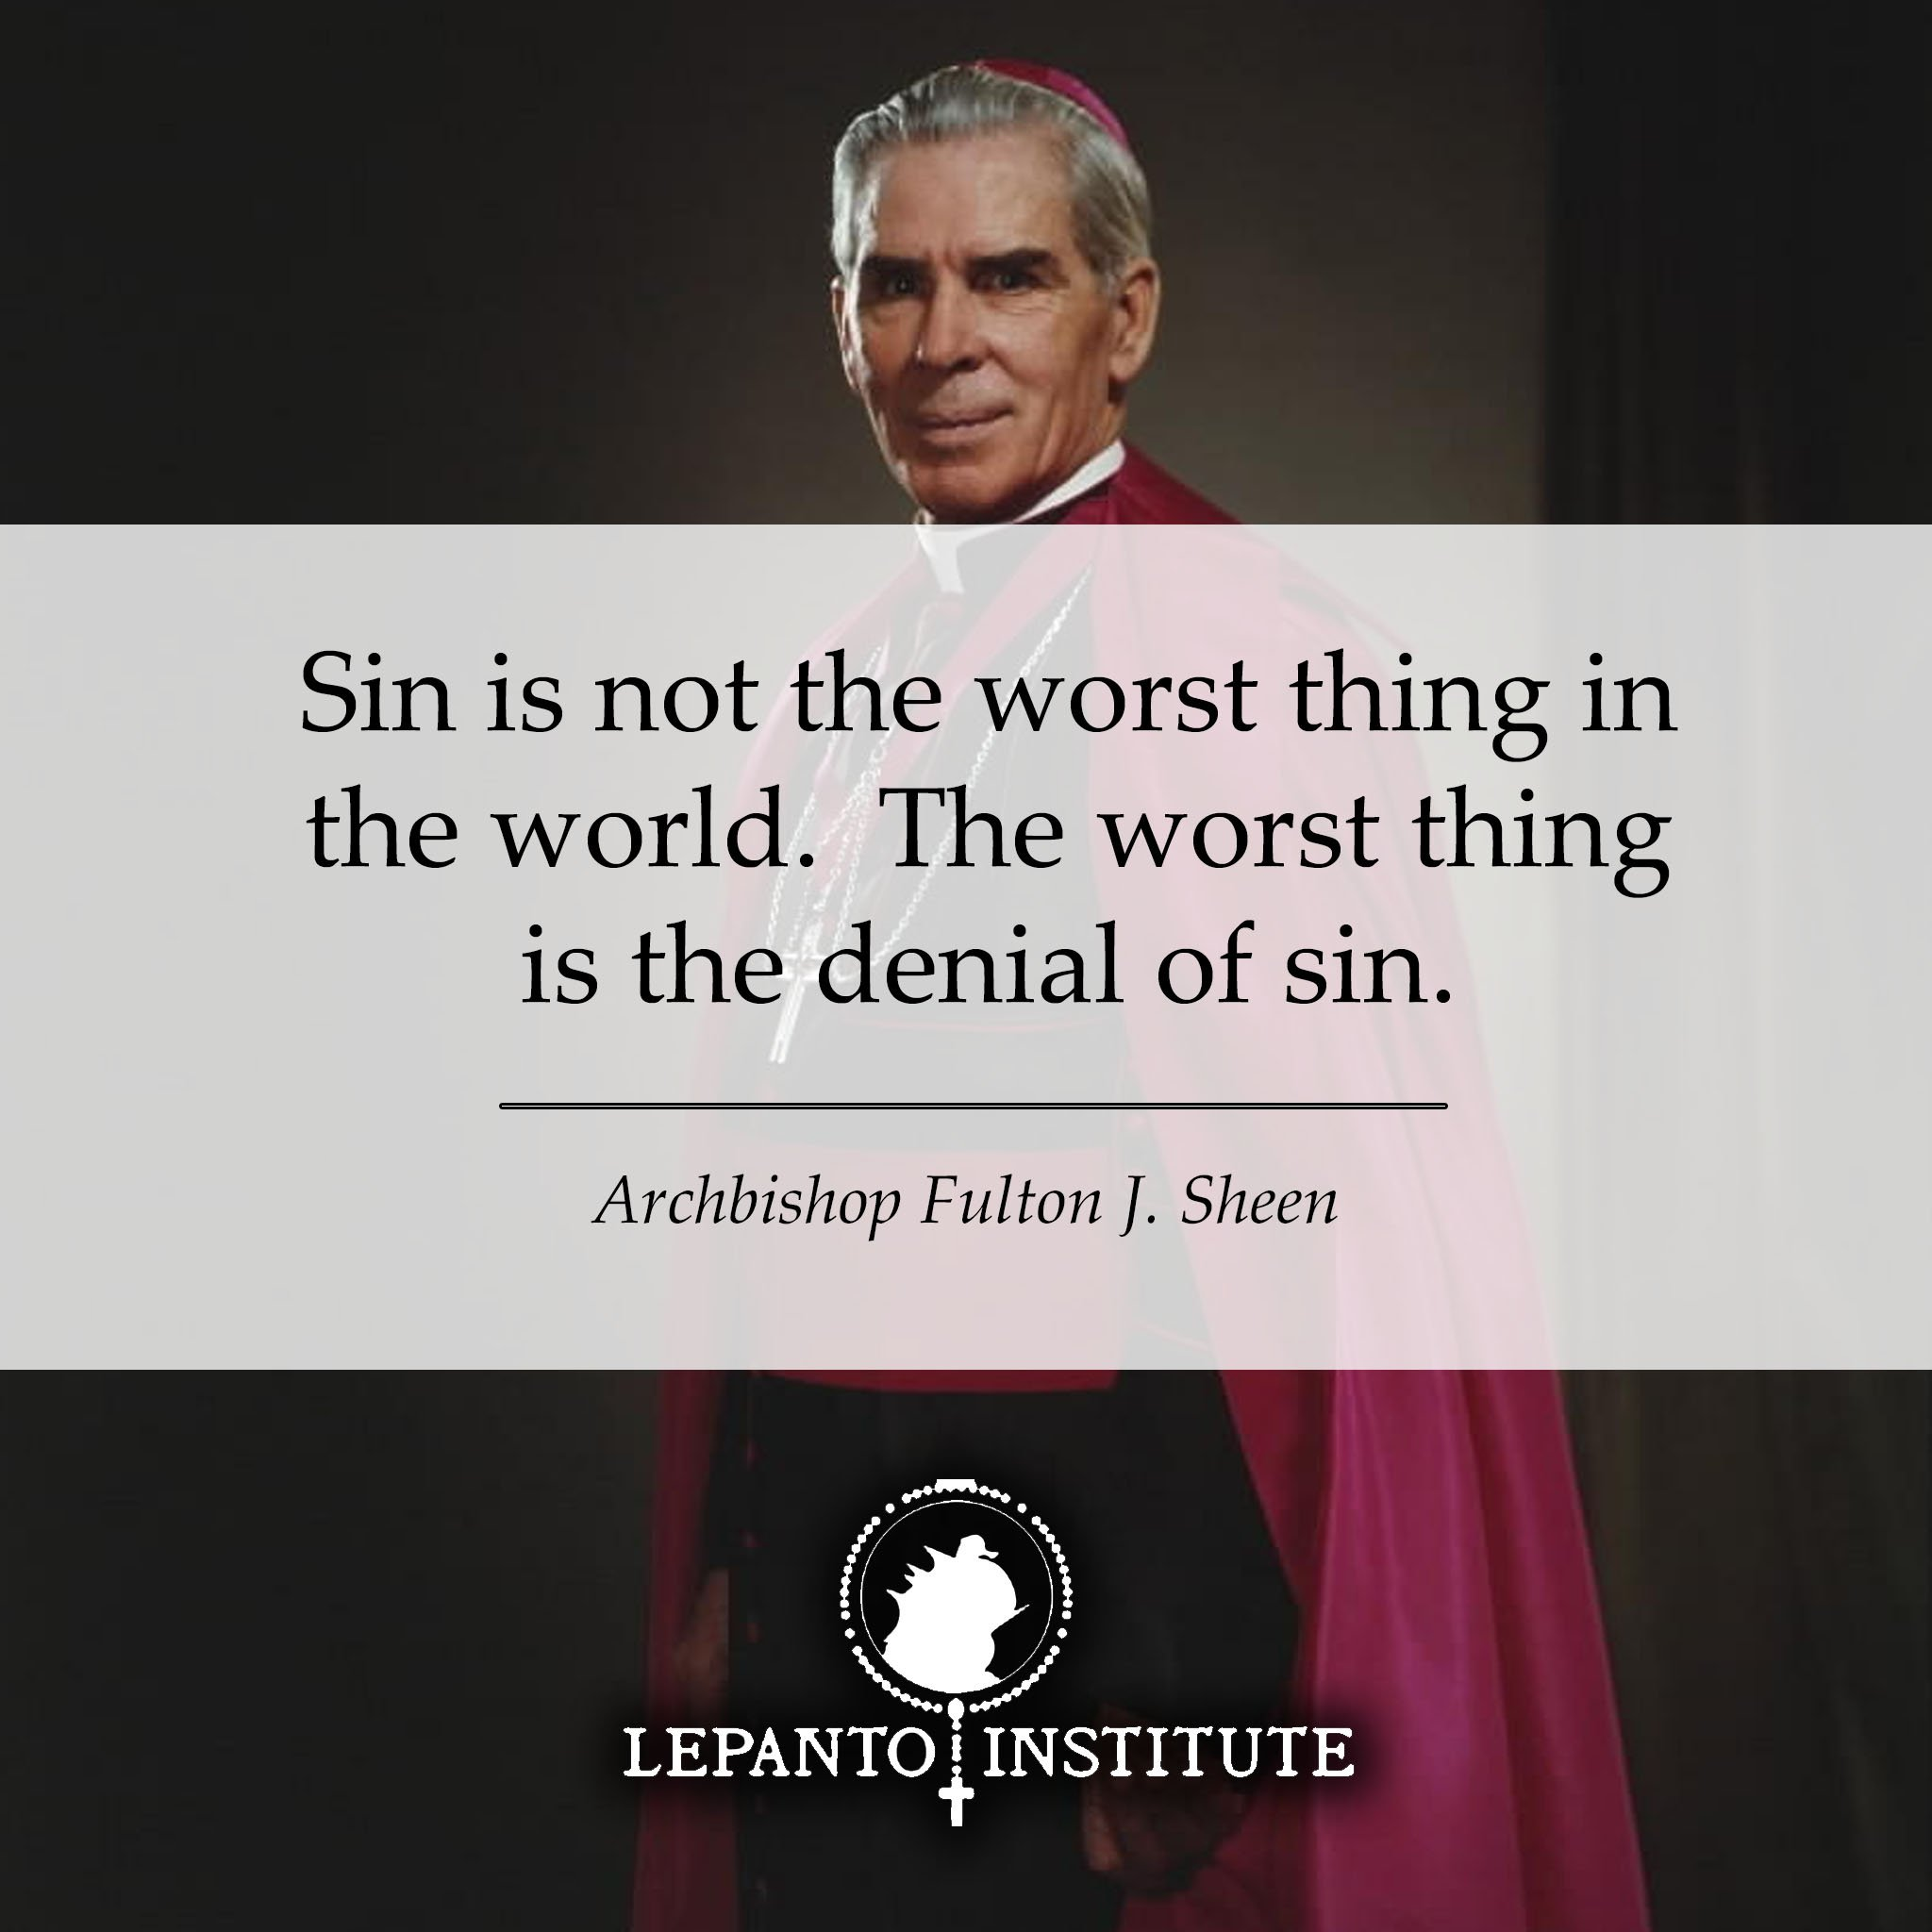 sin not the worst thing but denial of sin.jpeg